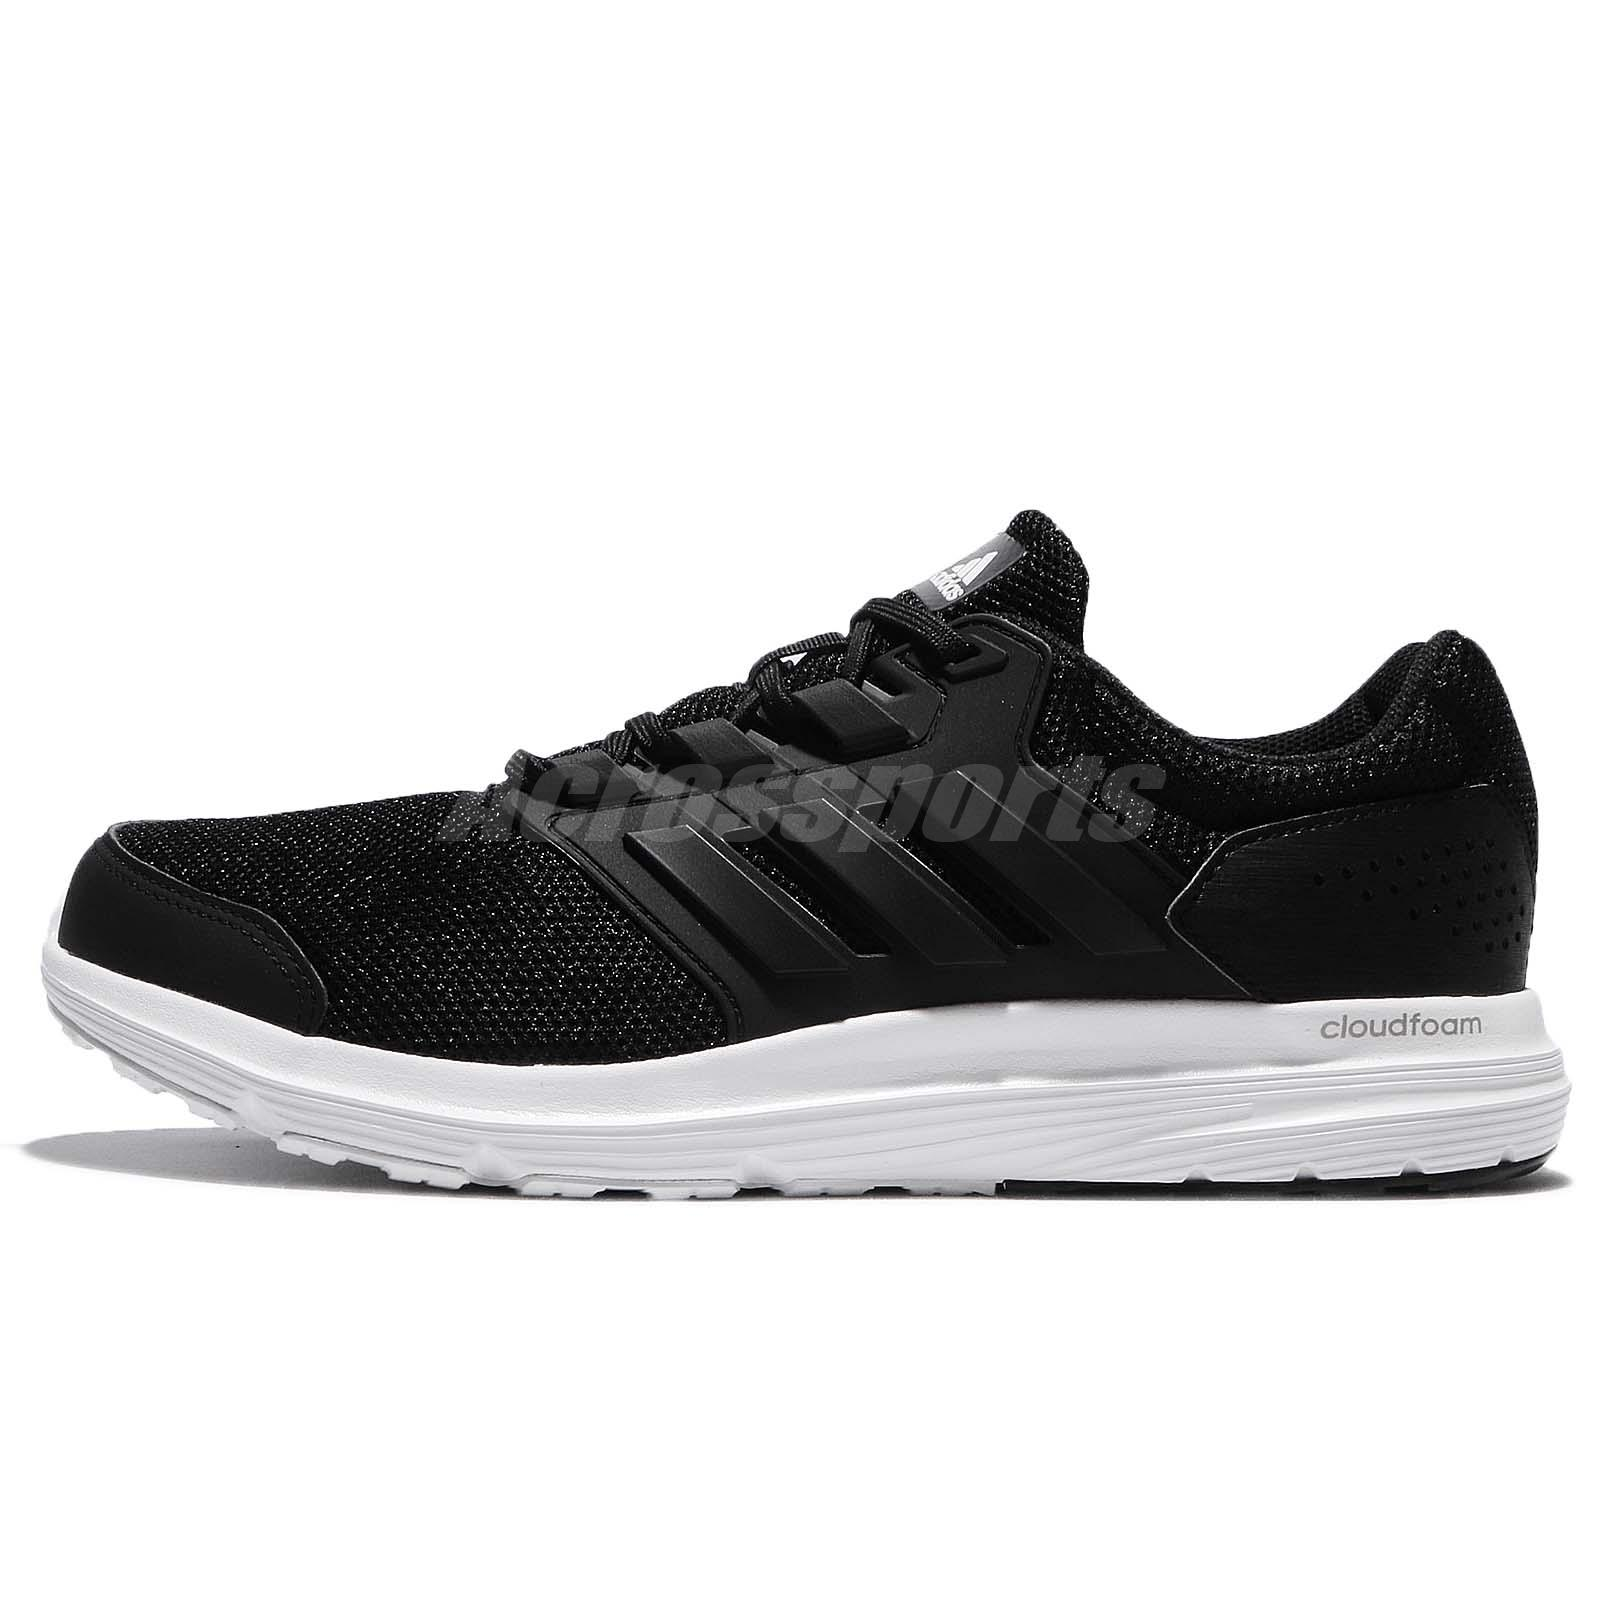 adidas Galaxy 4 M Black White Men Running Shoes Sneakers Trainers BB3563